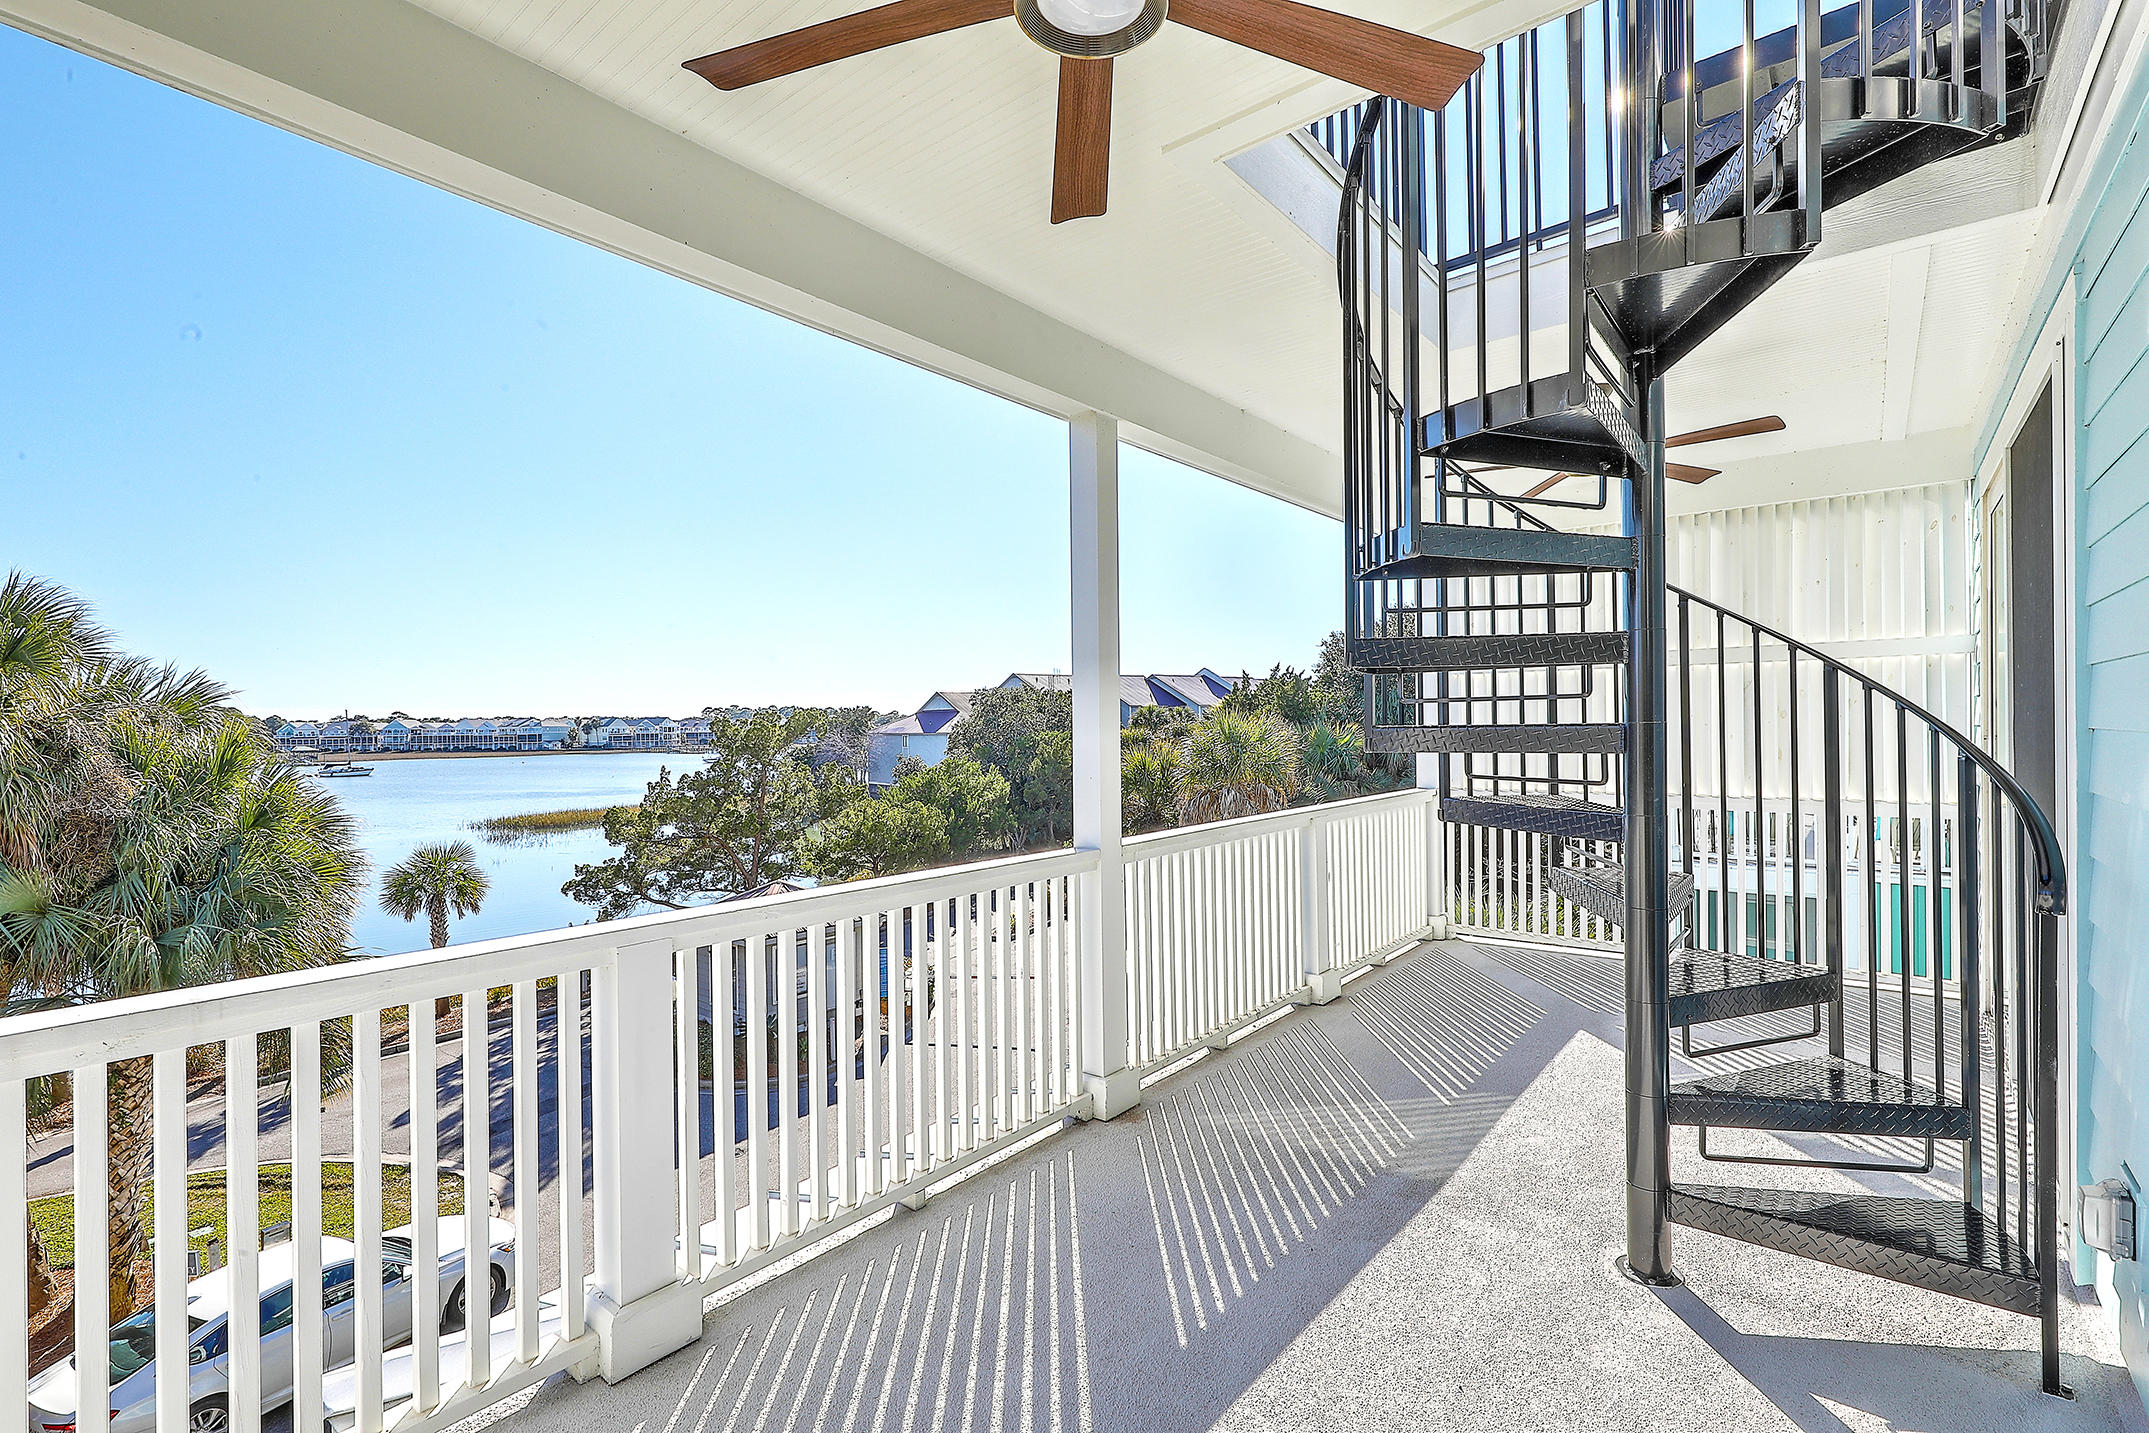 Mariners Cay Homes For Sale - 1002 Mariners Cay, Folly Beach, SC - 12